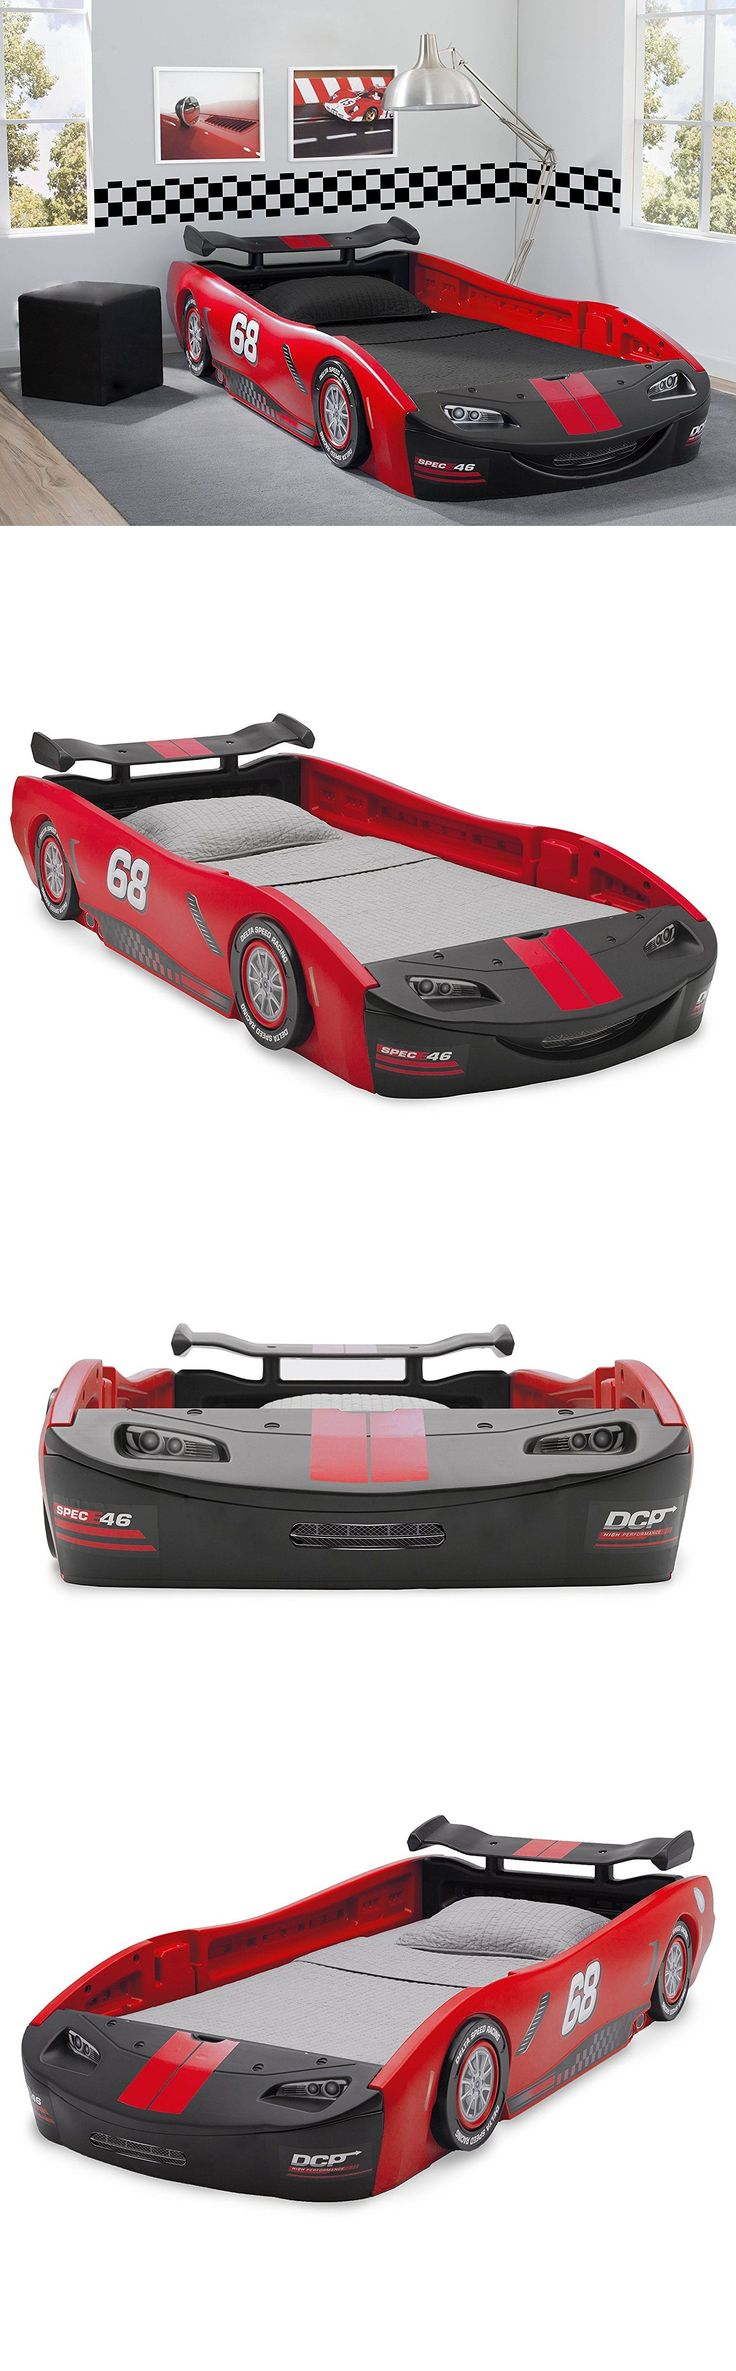 Kids Furniture: Car Bed Turbo Race Twin Delta Boys Children Bedroom Kids Bed Toddler Furniture BUY IT NOW ONLY: $225.85